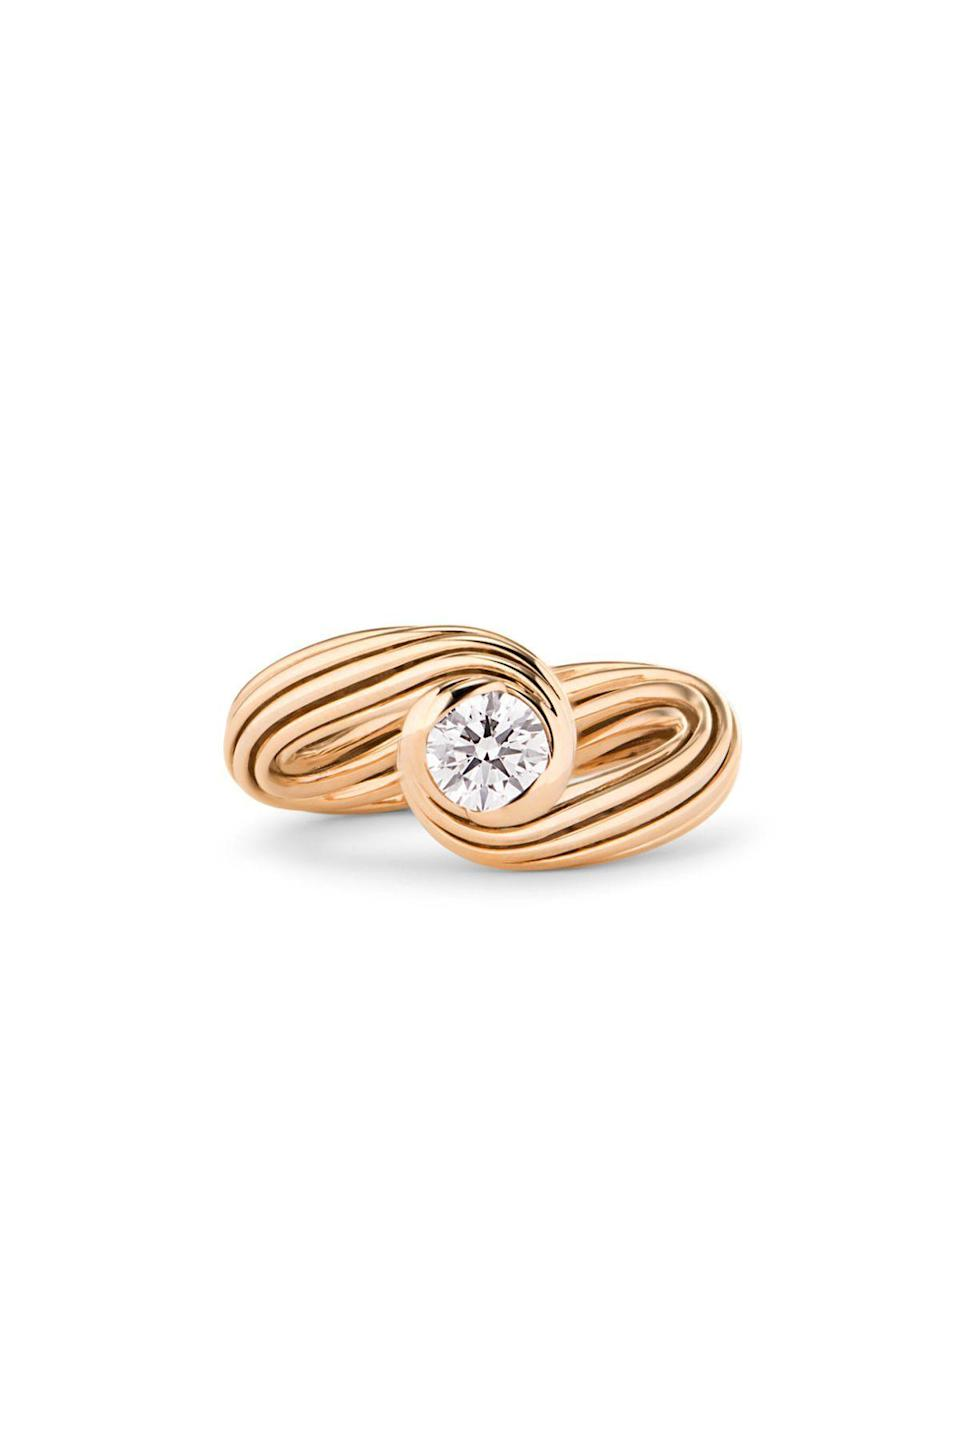 """<p><strong>By Kim</strong></p><p>wempe.com</p><p><strong>$8375.00</strong></p><p><a href=""""https://www.wempe.com/en-us/jewelry/by-kim/helioro-by-kim/helioro-solitaire-ring-10rg1867?c=6312"""" rel=""""nofollow noopener"""" target=""""_blank"""" data-ylk=""""slk:Shop Now"""" class=""""link rapid-noclick-resp"""">Shop Now</a></p><p>This is a solitaire with swagger: nine bands of rose gold are wrapped and twisted to sweep around a brilliant-cut diamond. </p>"""